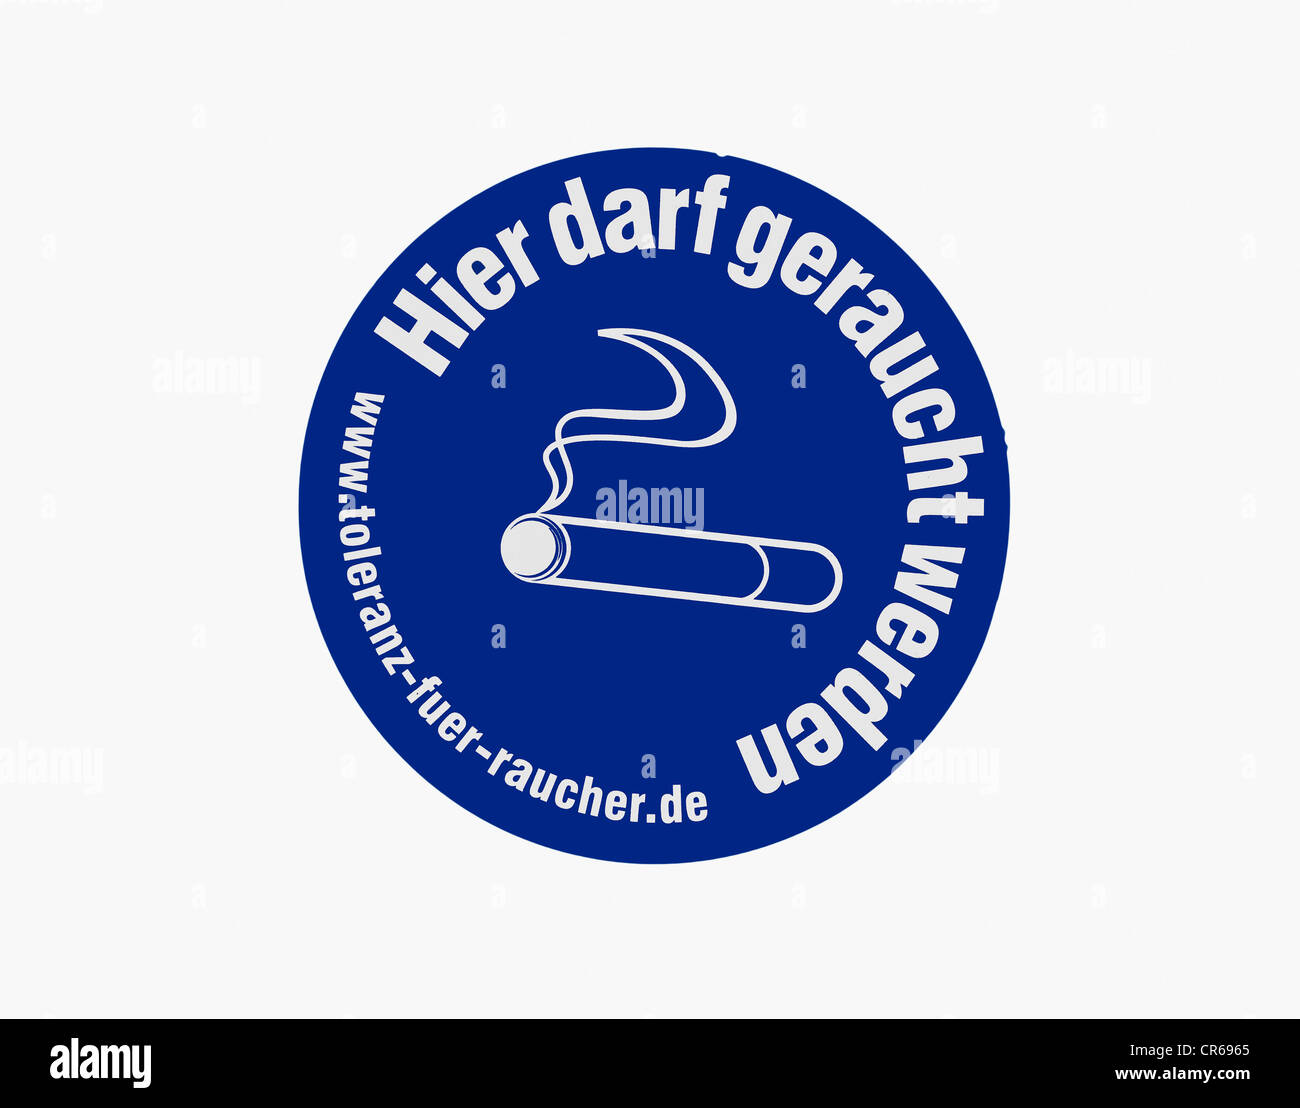 Sign 'hier darf geraucht werden', German for 'you may smoke here', tolerance for smokers, an initiative - Stock Image